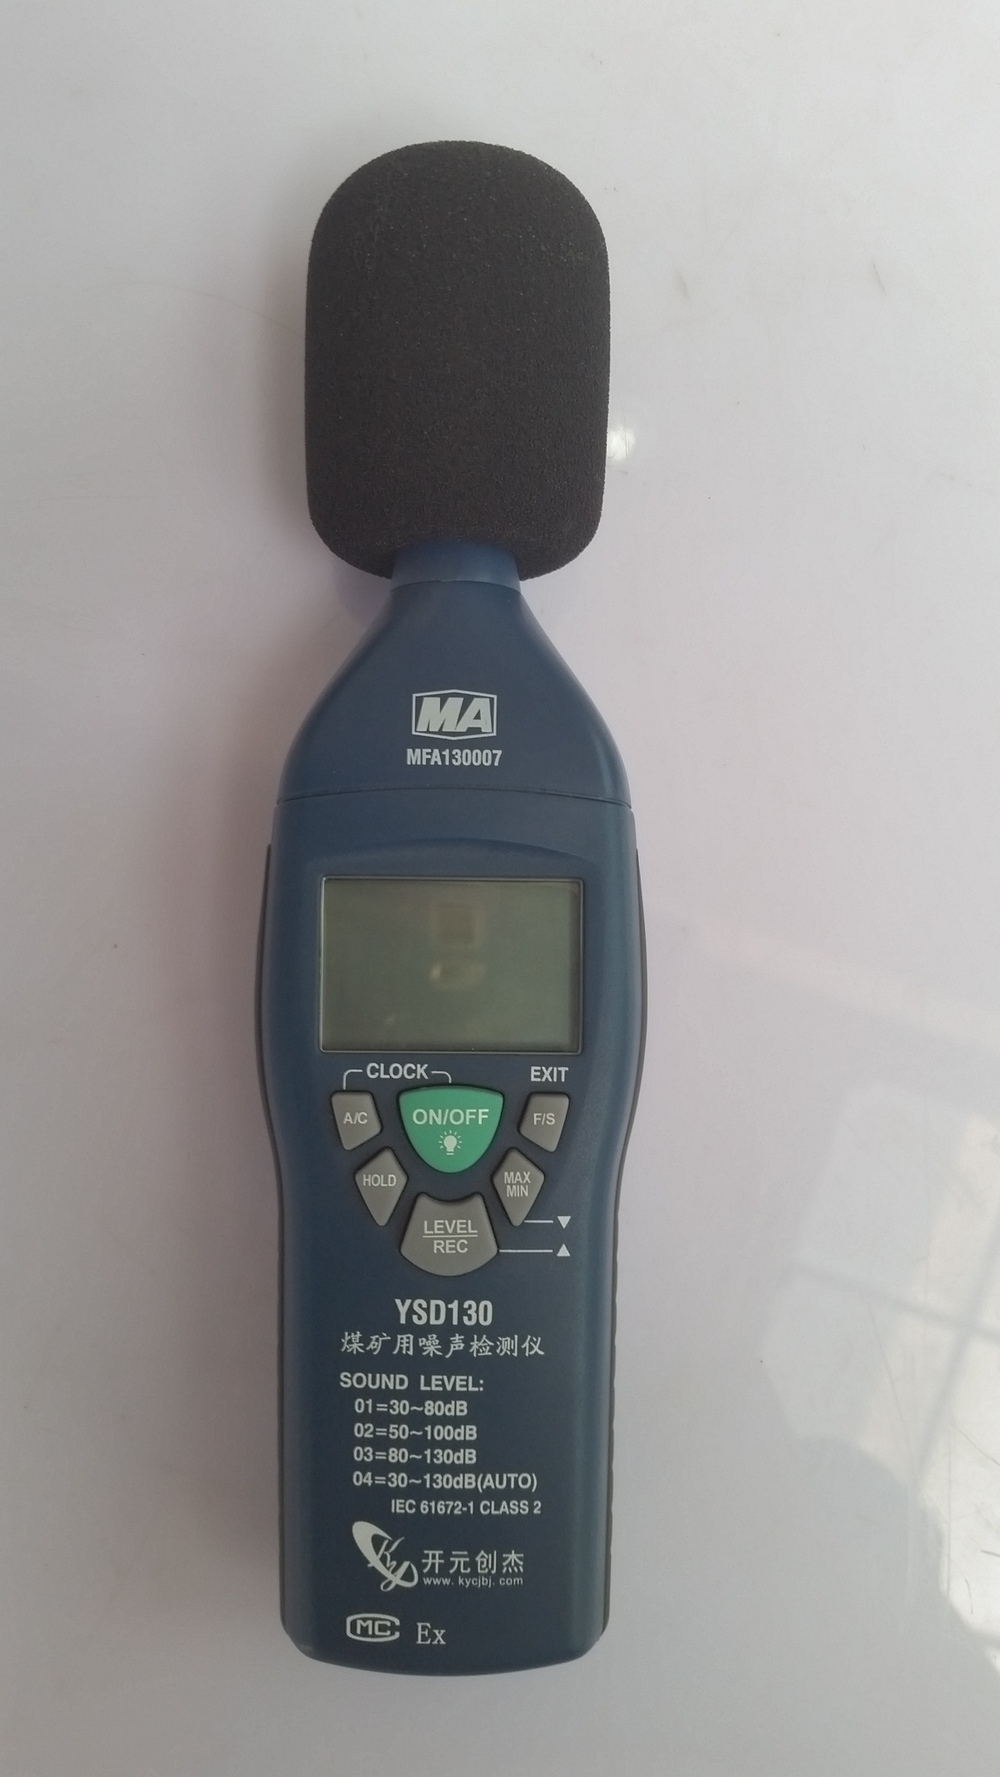 Sound Level Meter With Explosion-proof Certificate